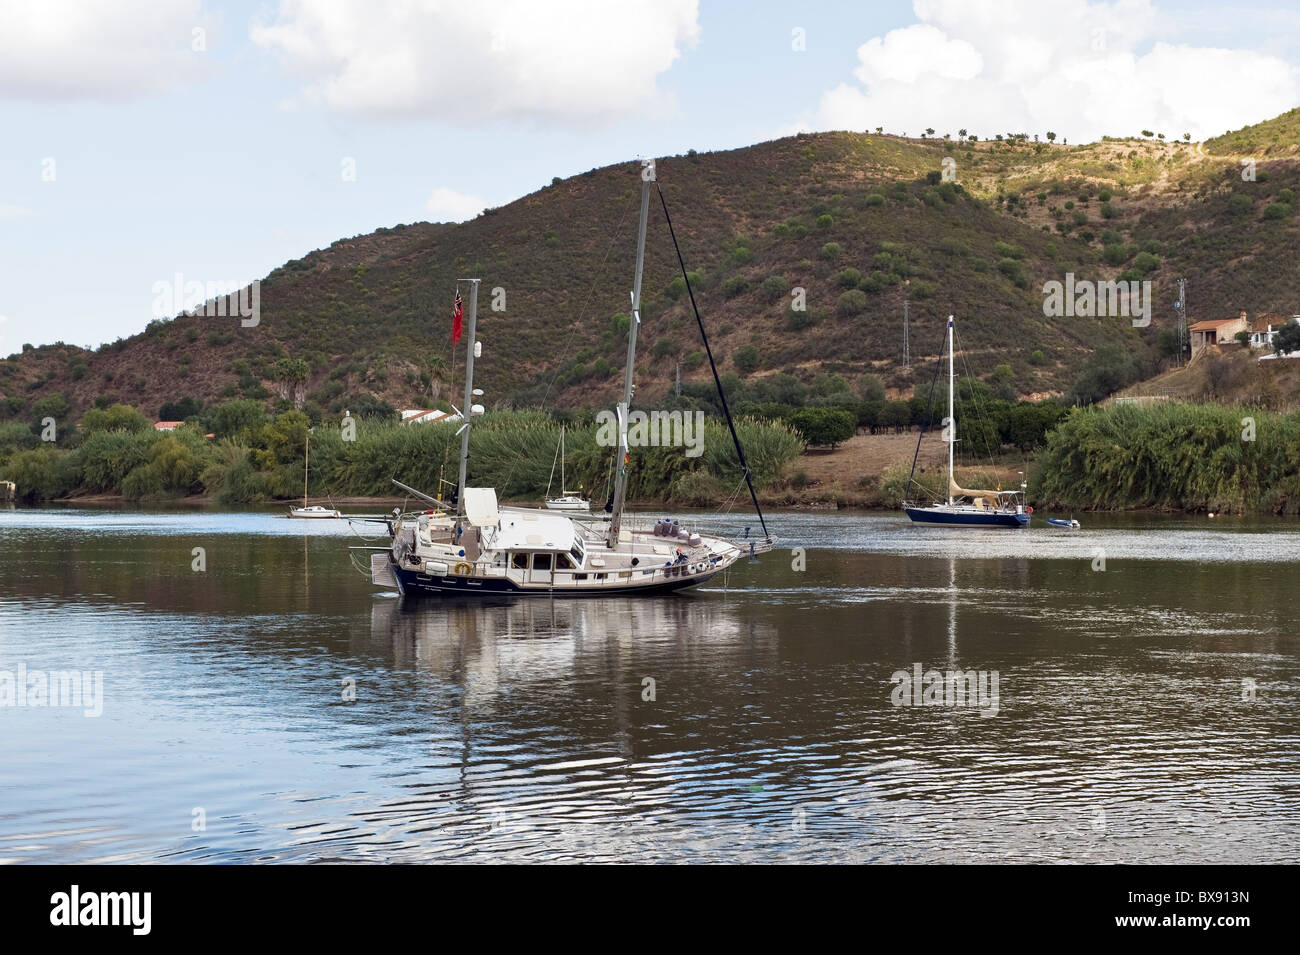 Yacht aground on the River Guadiana at Alcoutim, Algarve. The river forms a natural boarder between Spain and Portugal - Stock Image